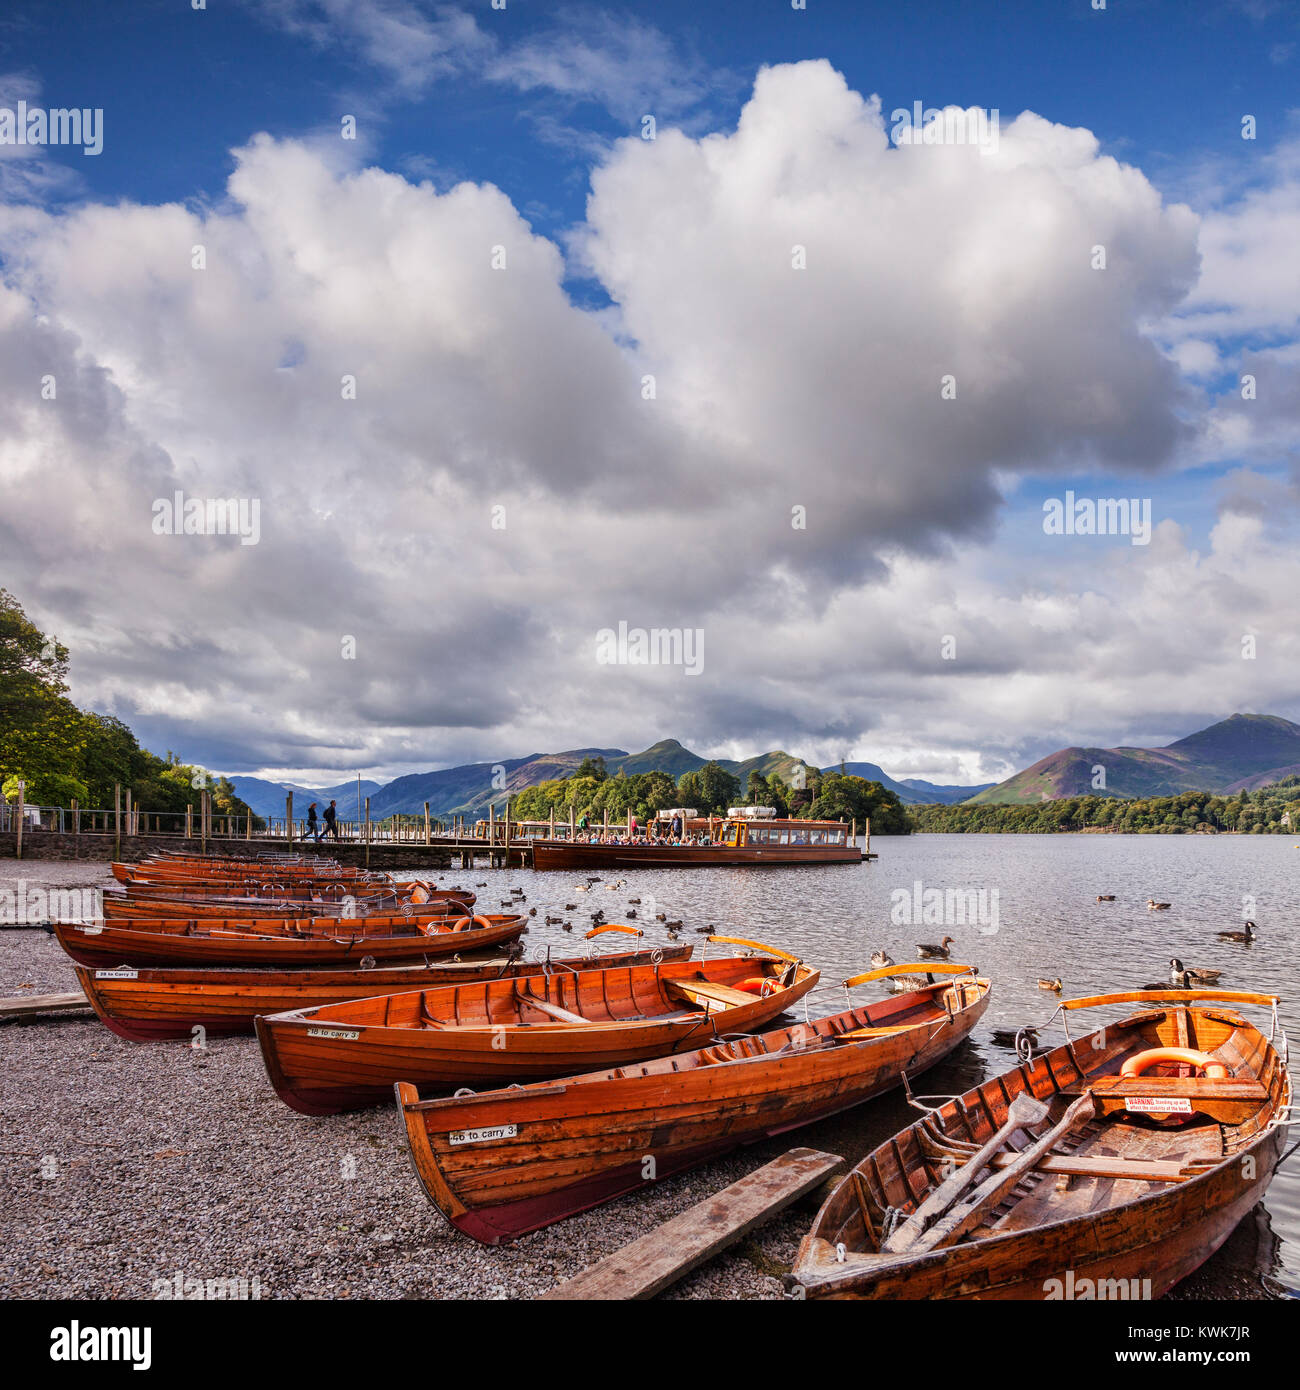 Boats on Derwentwater, looking towards Derwent Isle and Cat Bells, Keswick, Cumbria, England. Tourists boarding - Stock Image